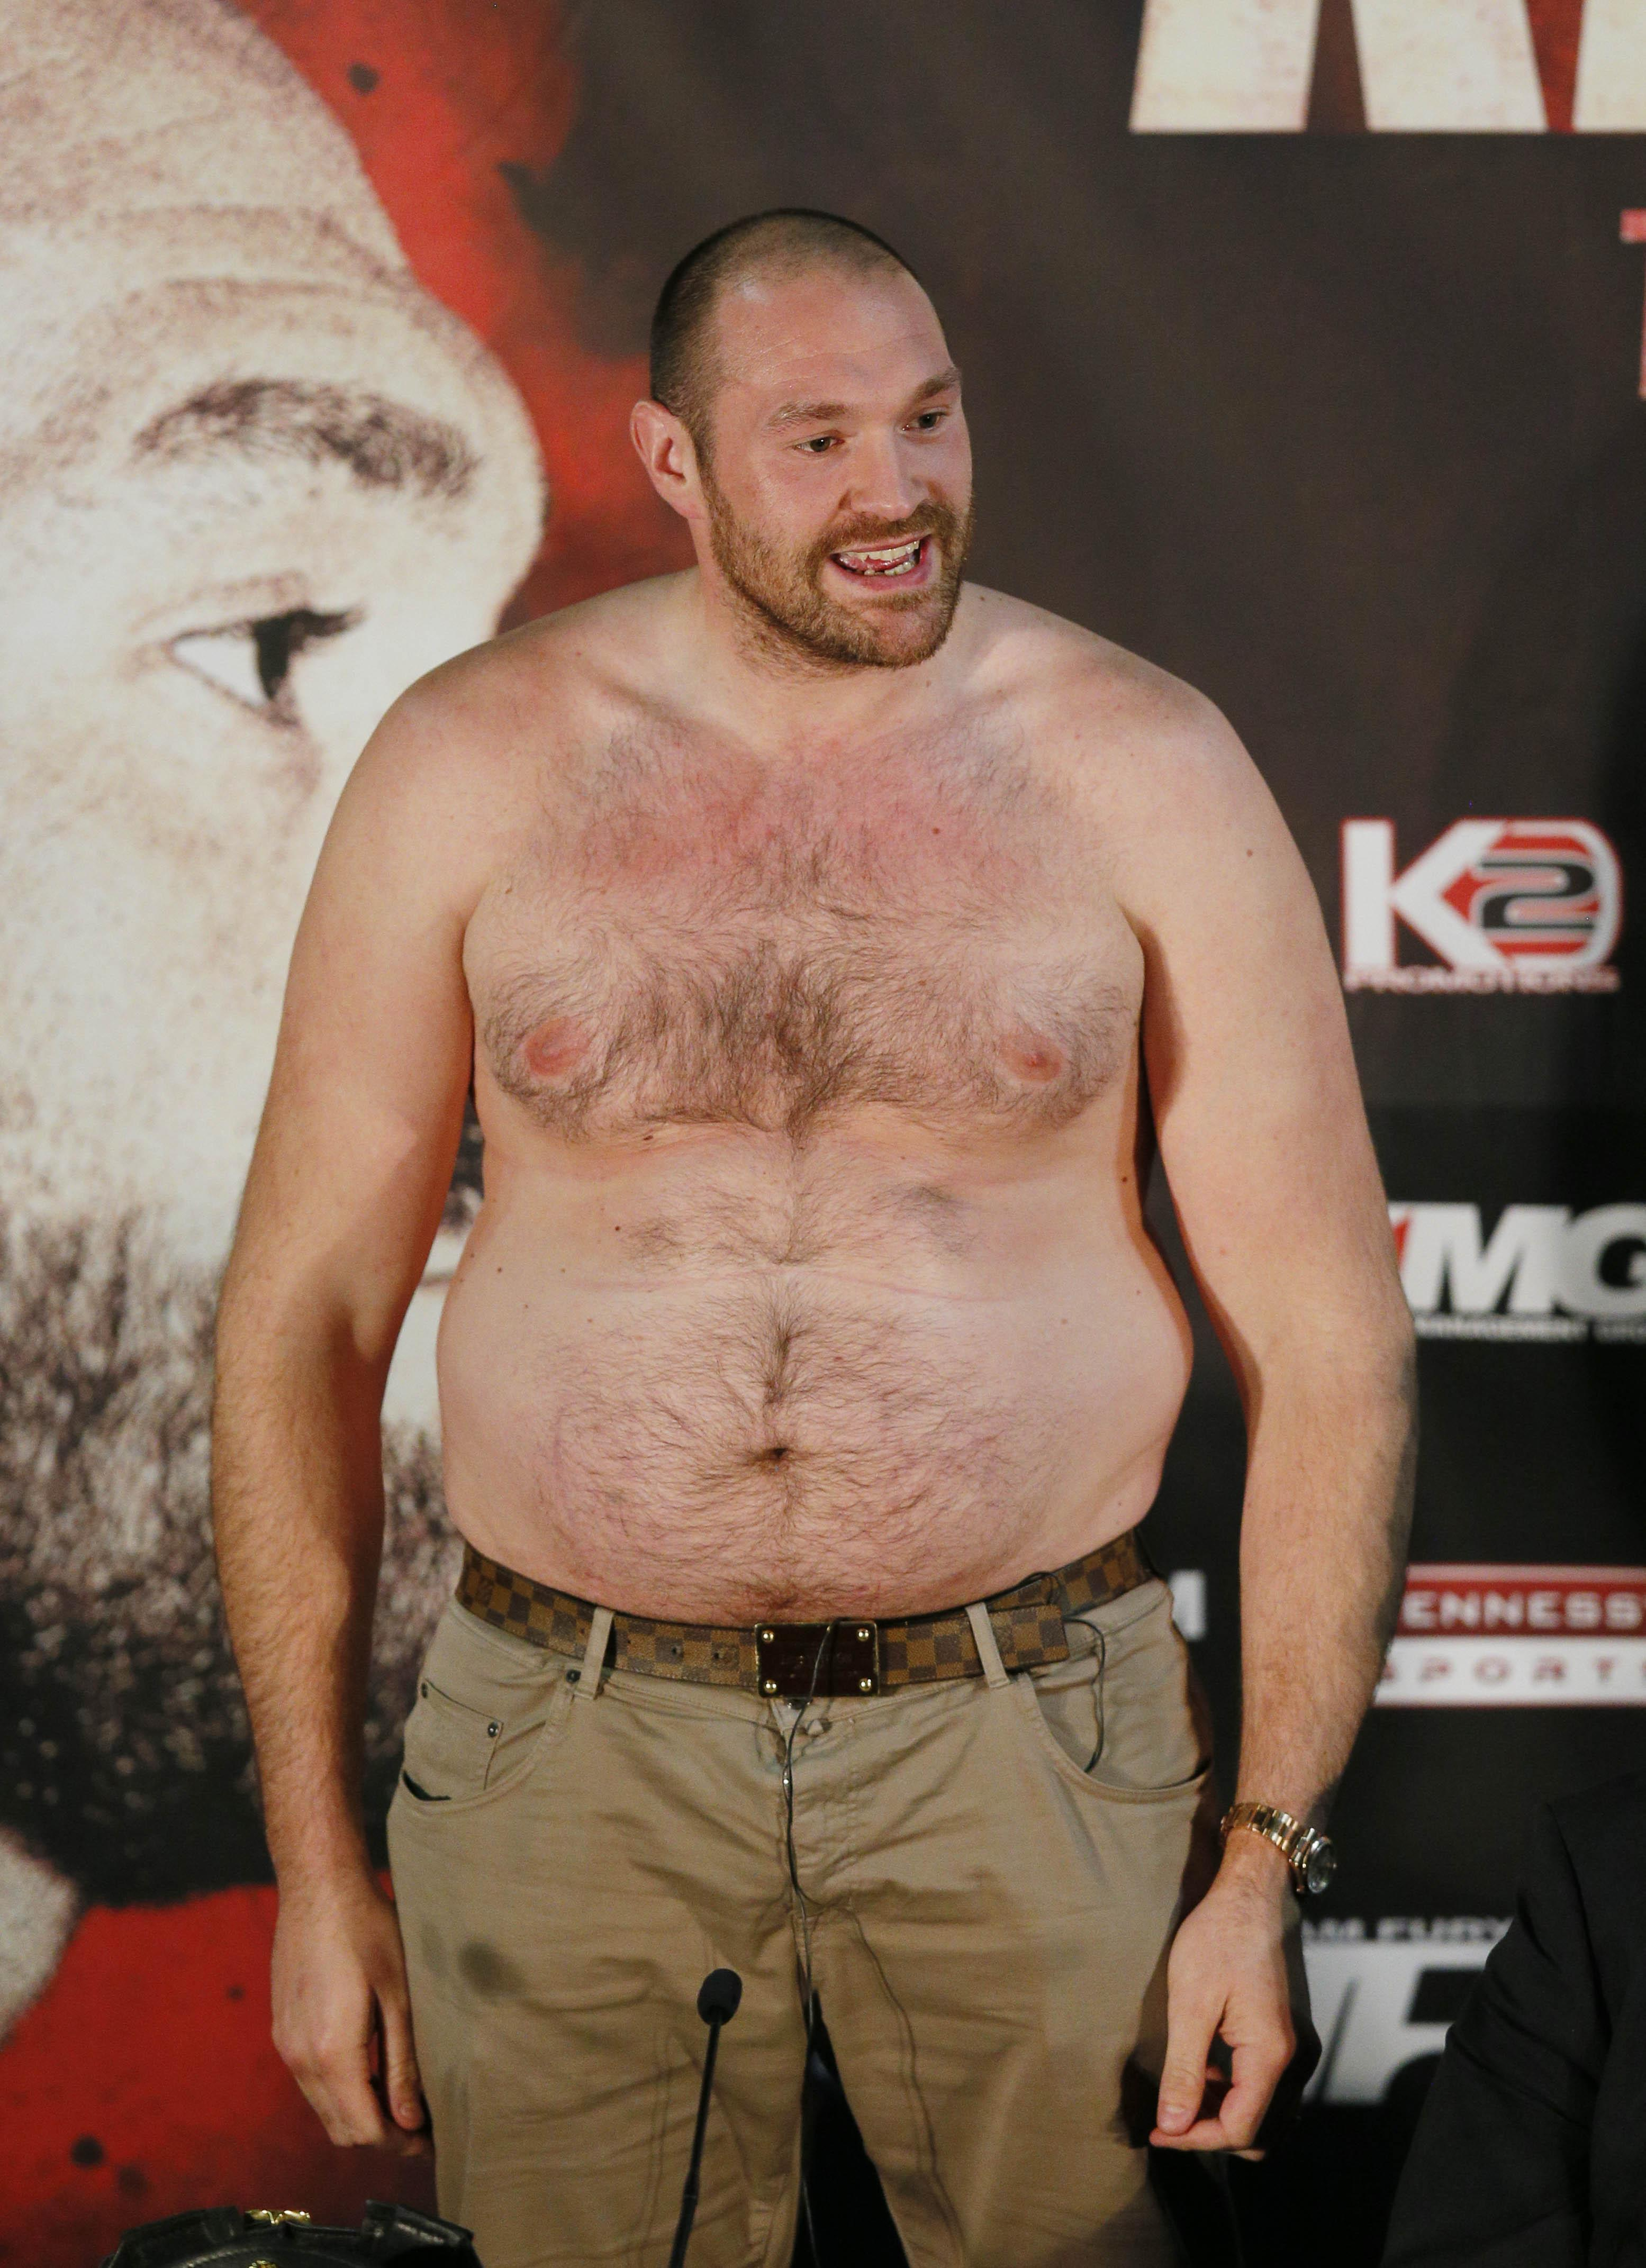 Fury ballooned in the weight after a period which saw him drink up to 100 pints a week